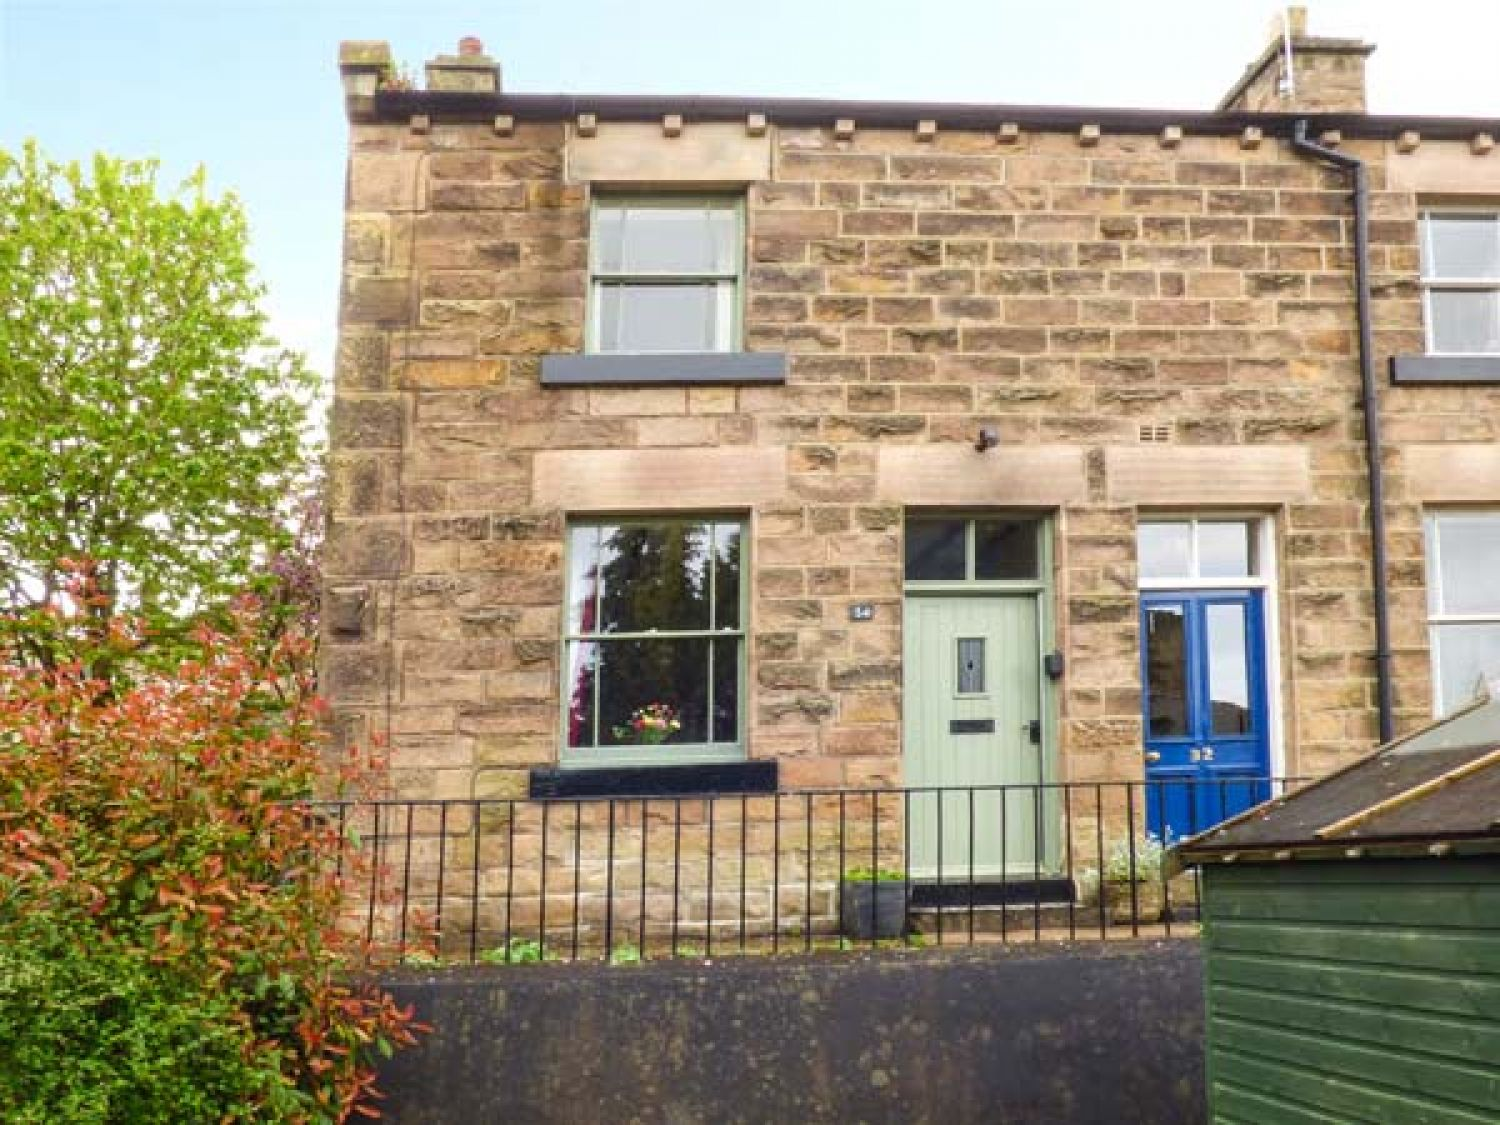 34 Church Street - Peak District - 933358 - photo 1